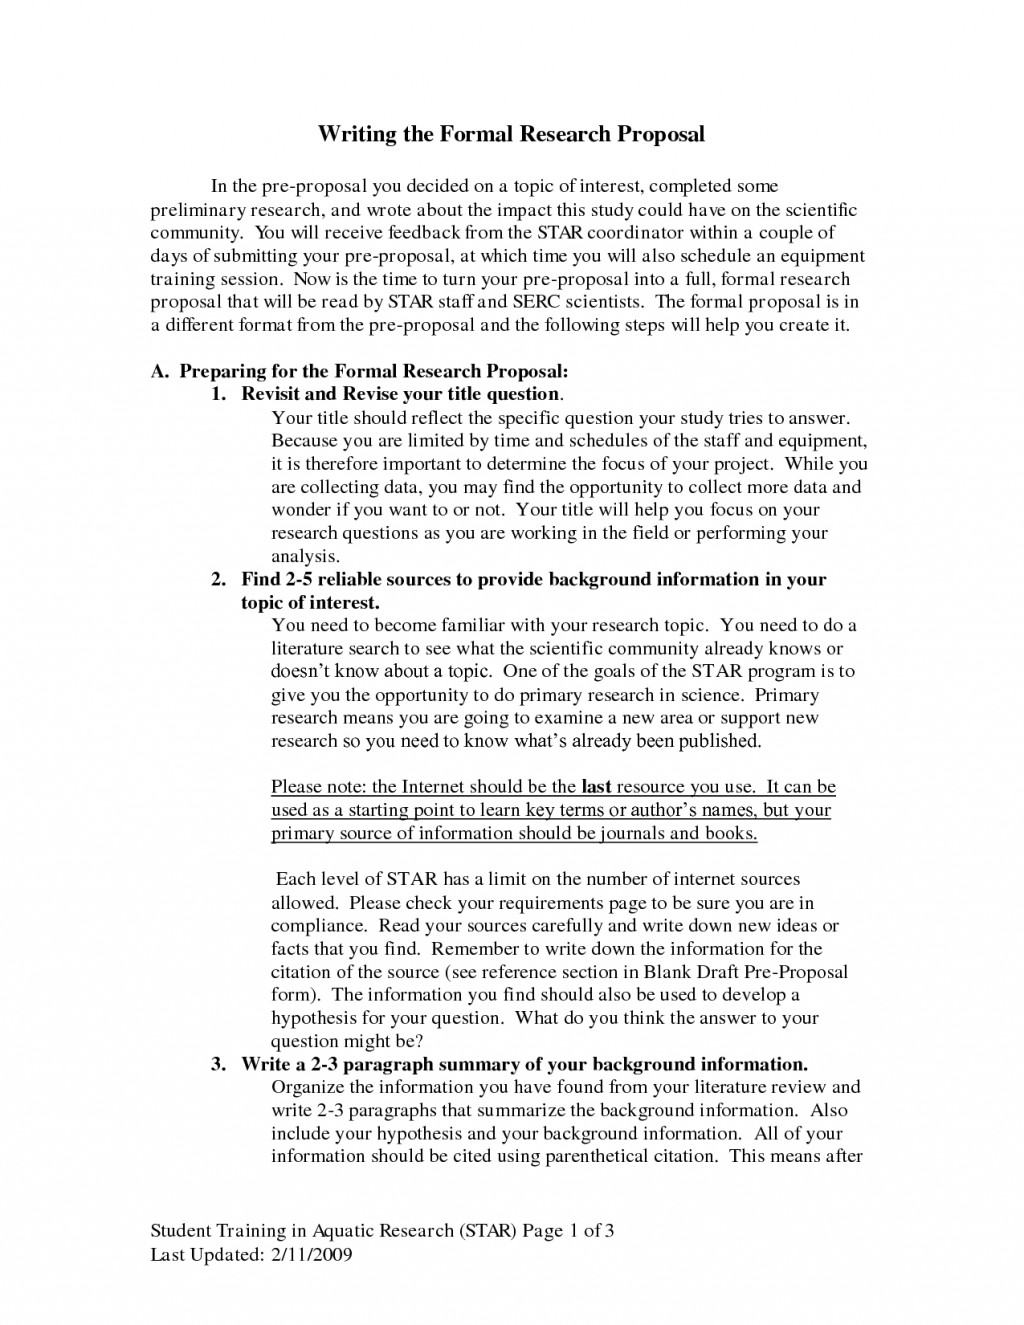 003 Apa Research Paper Proposal Sample Style 616954 Marvelous Example Large